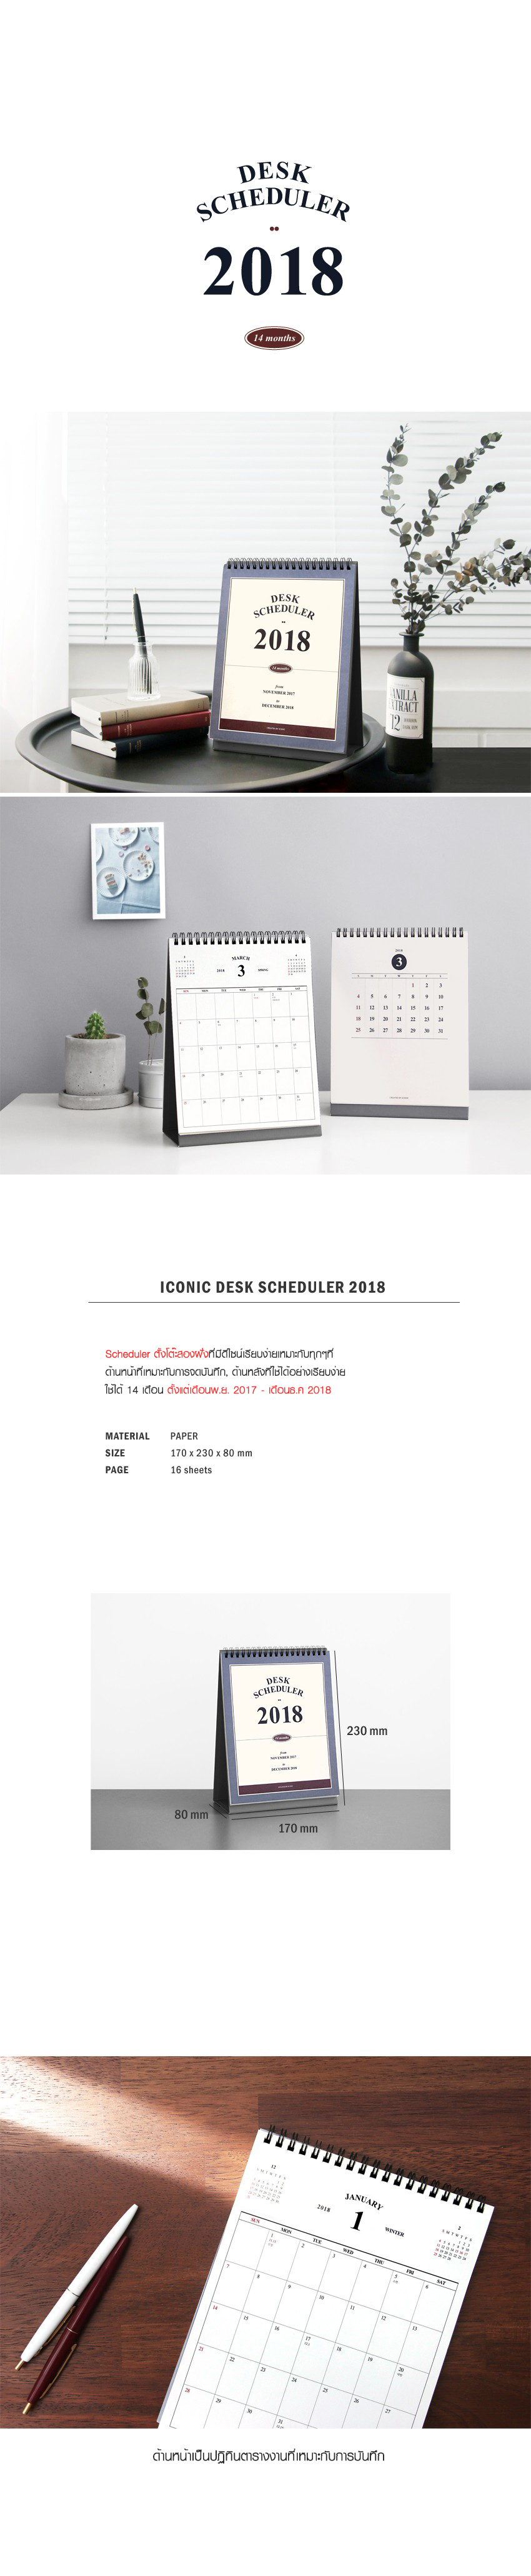 2018-desk-scheduler-1.jpg